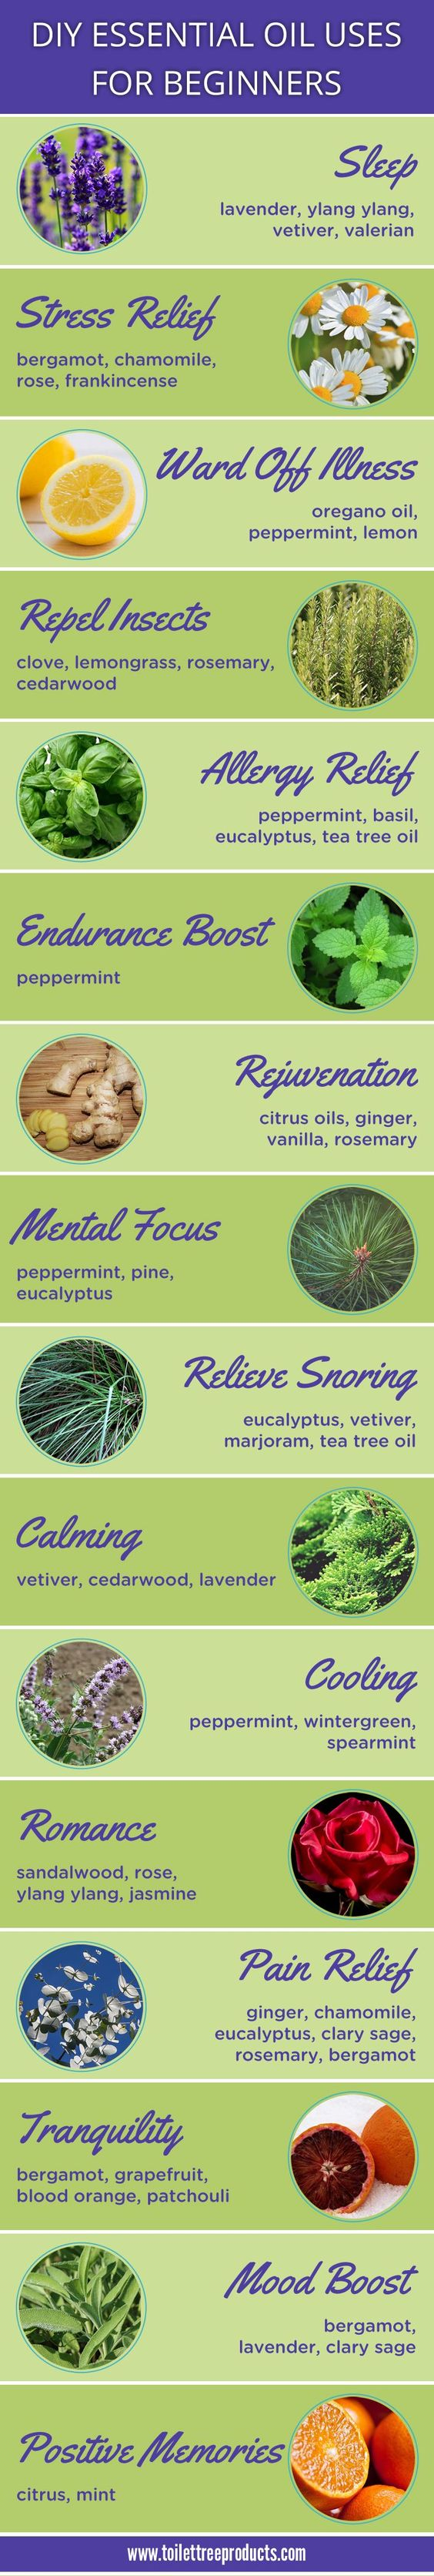 DIY Essential Oil Uses for Beginners